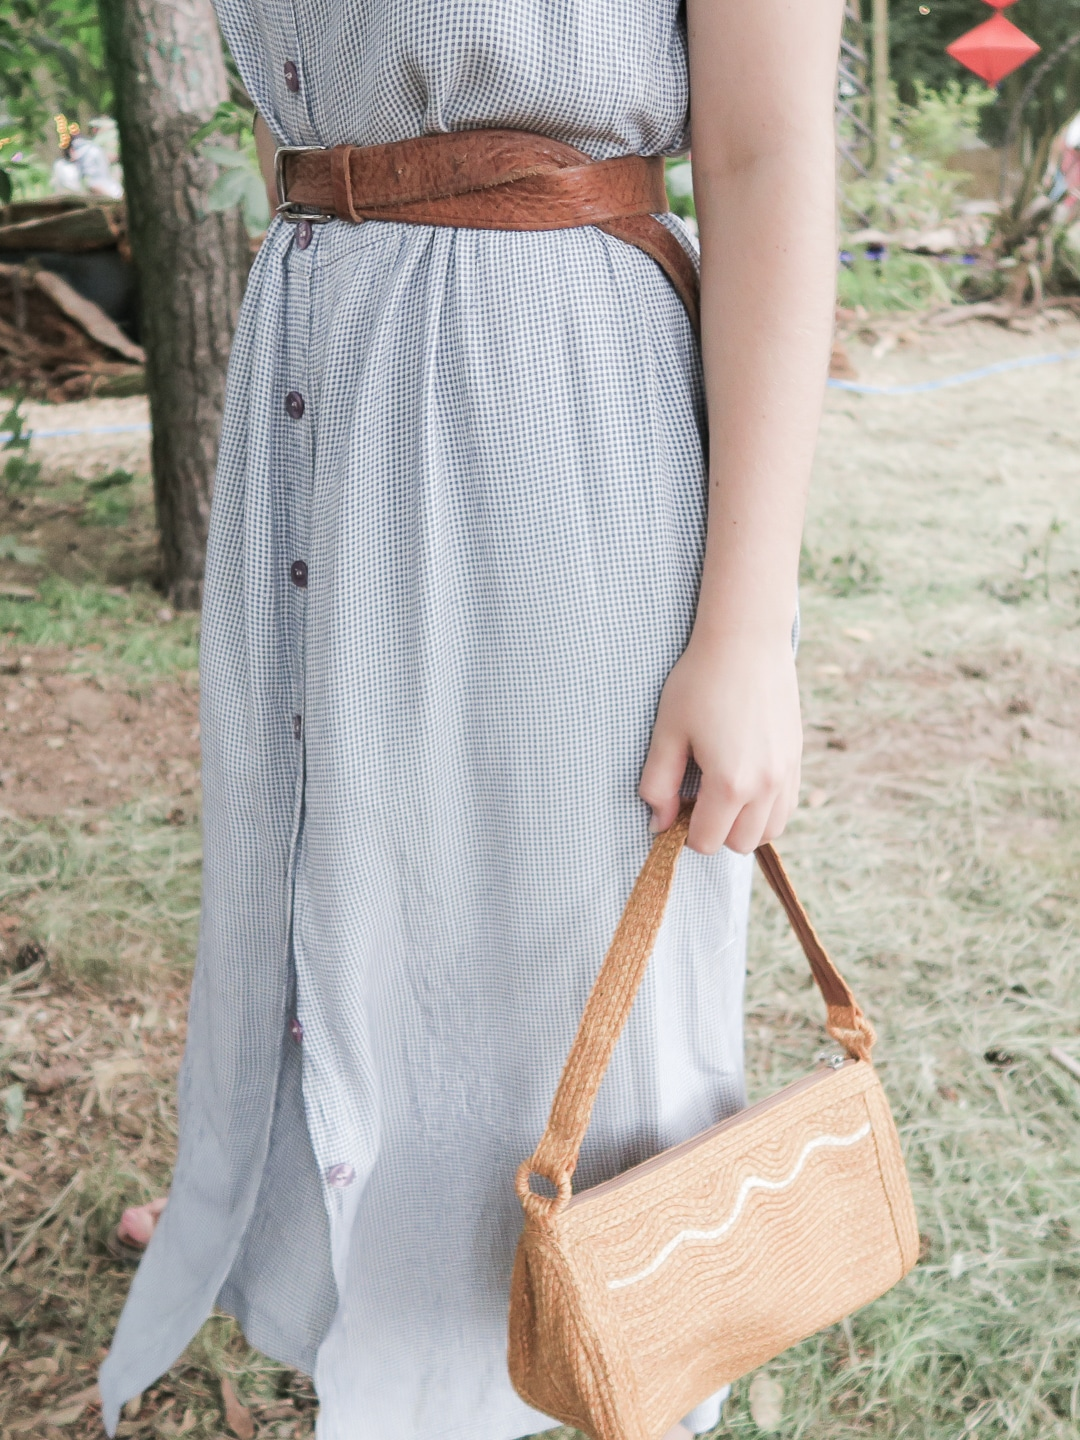 Woman in a blue dress holding a straw bag